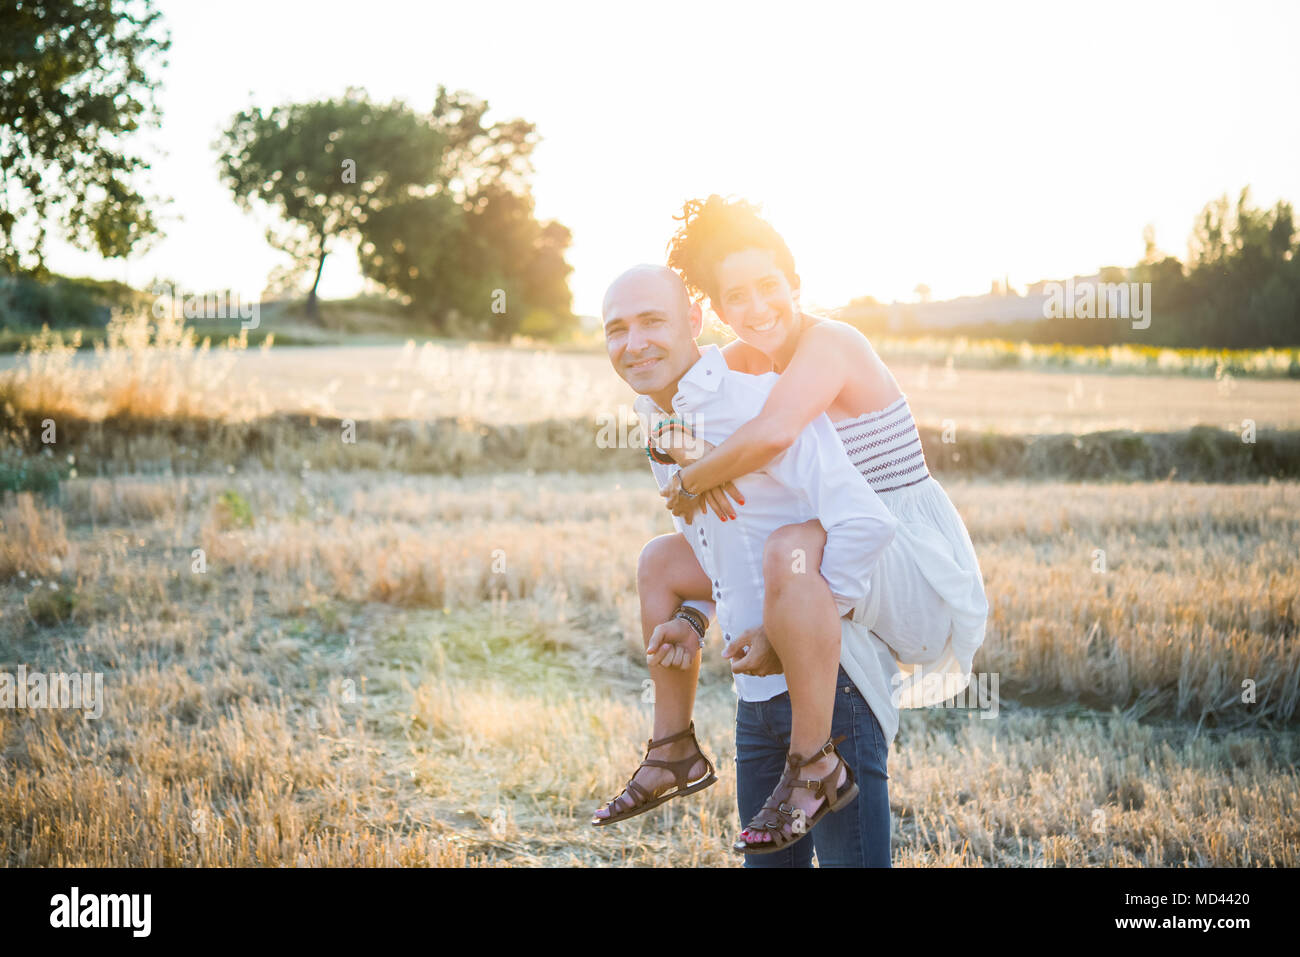 Portrait of heterosexual couple in field, man carrying woman on back - Stock Image